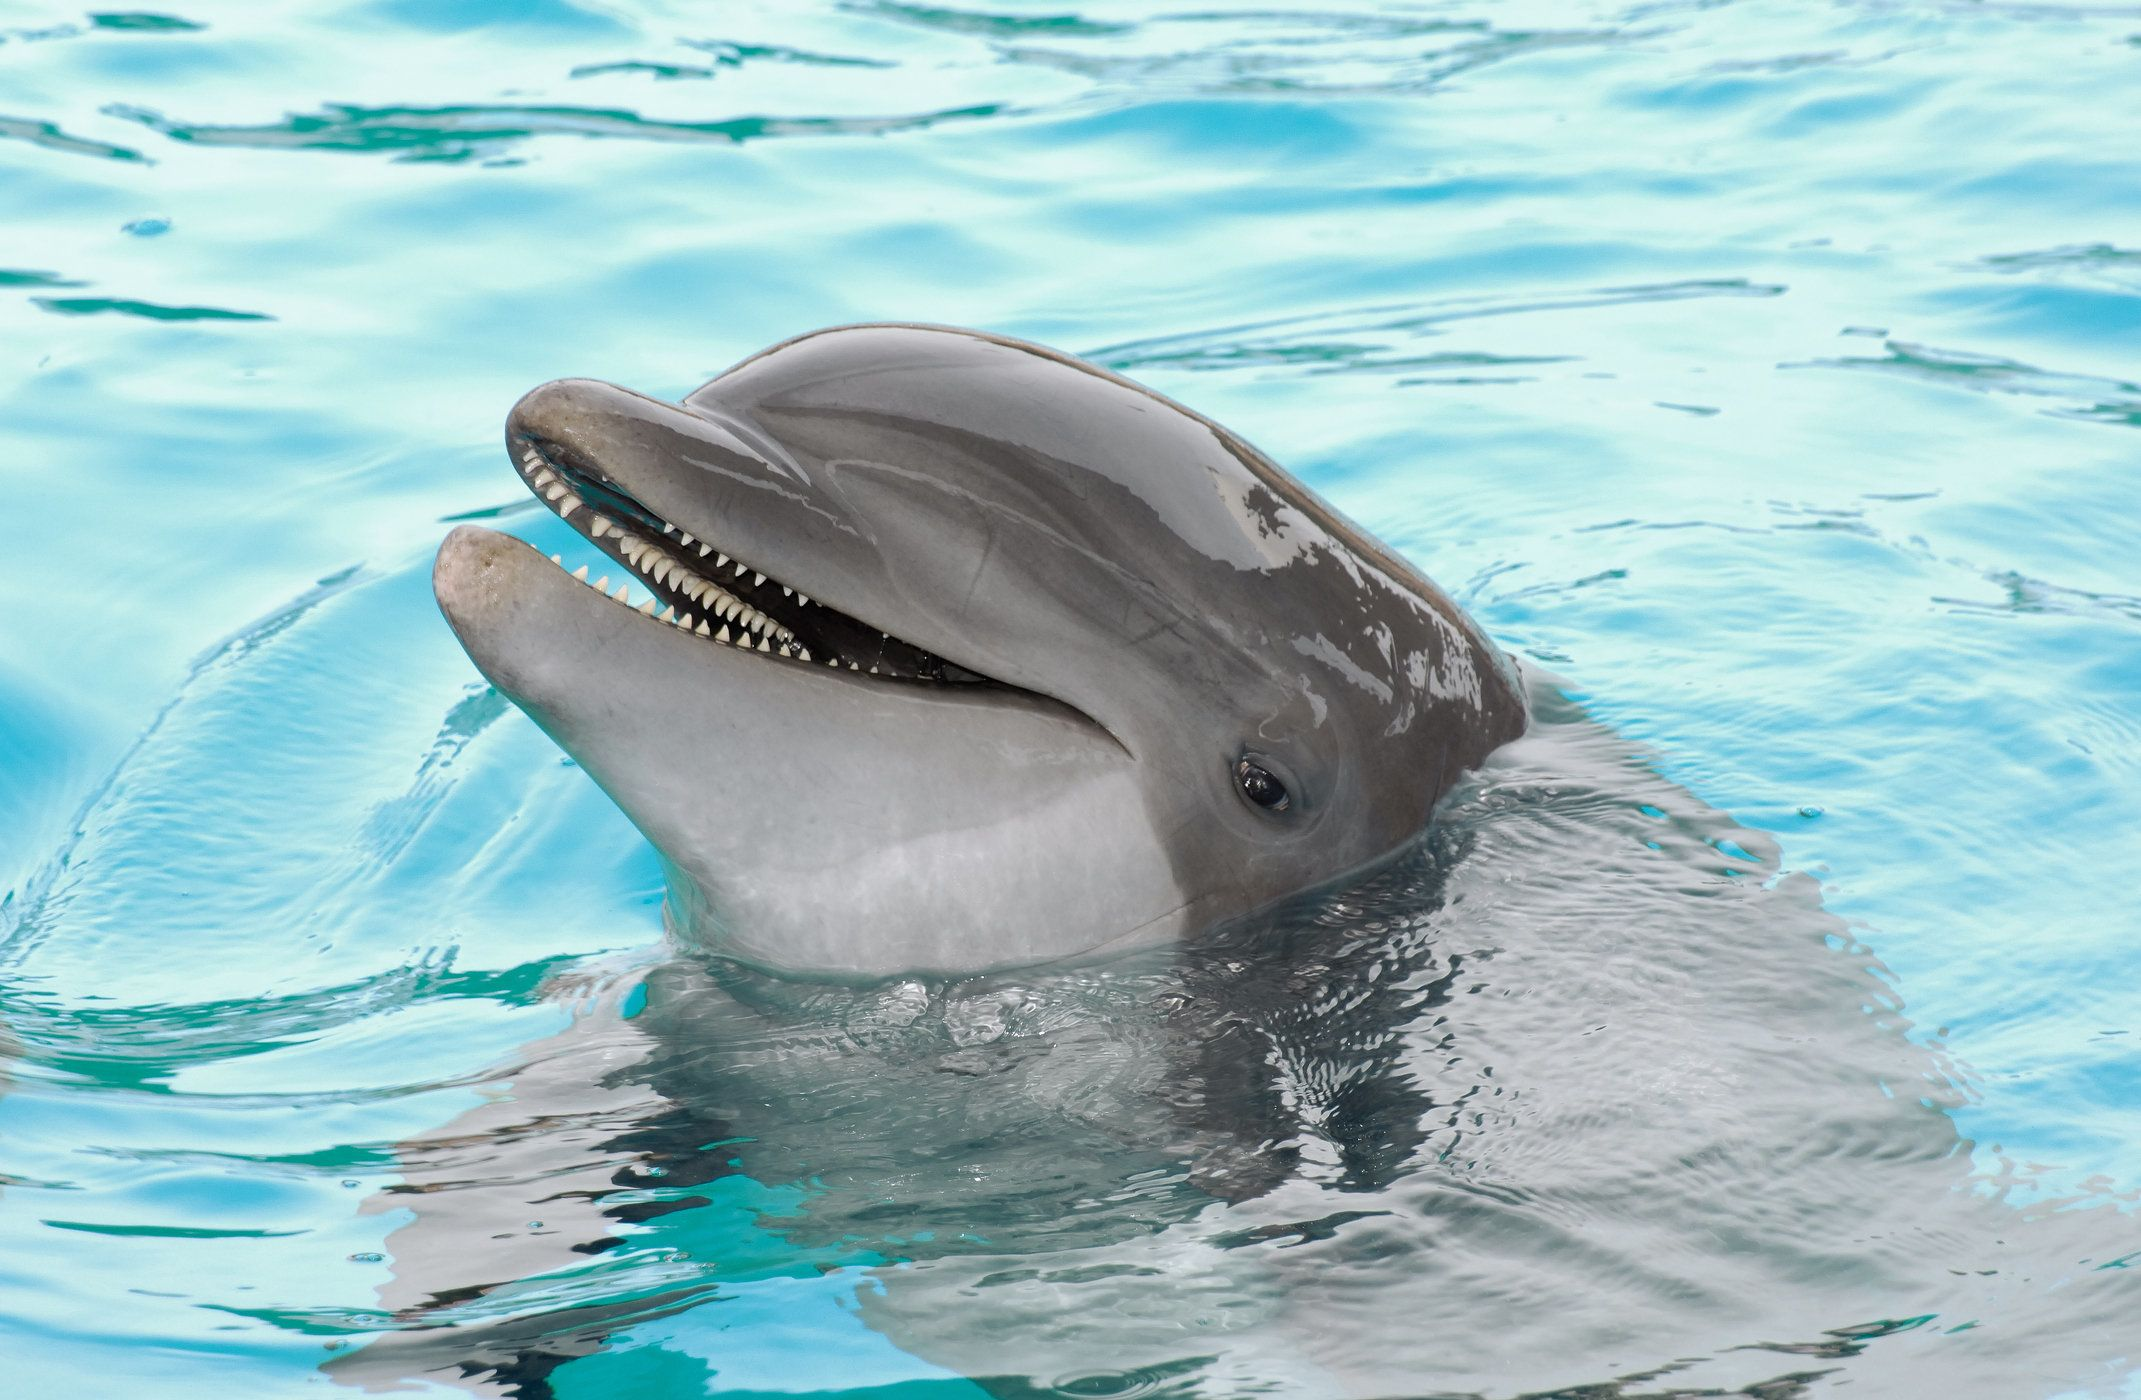 Some scientists have poured cold water over a Russian study that suggests dolphins have their own language in which they